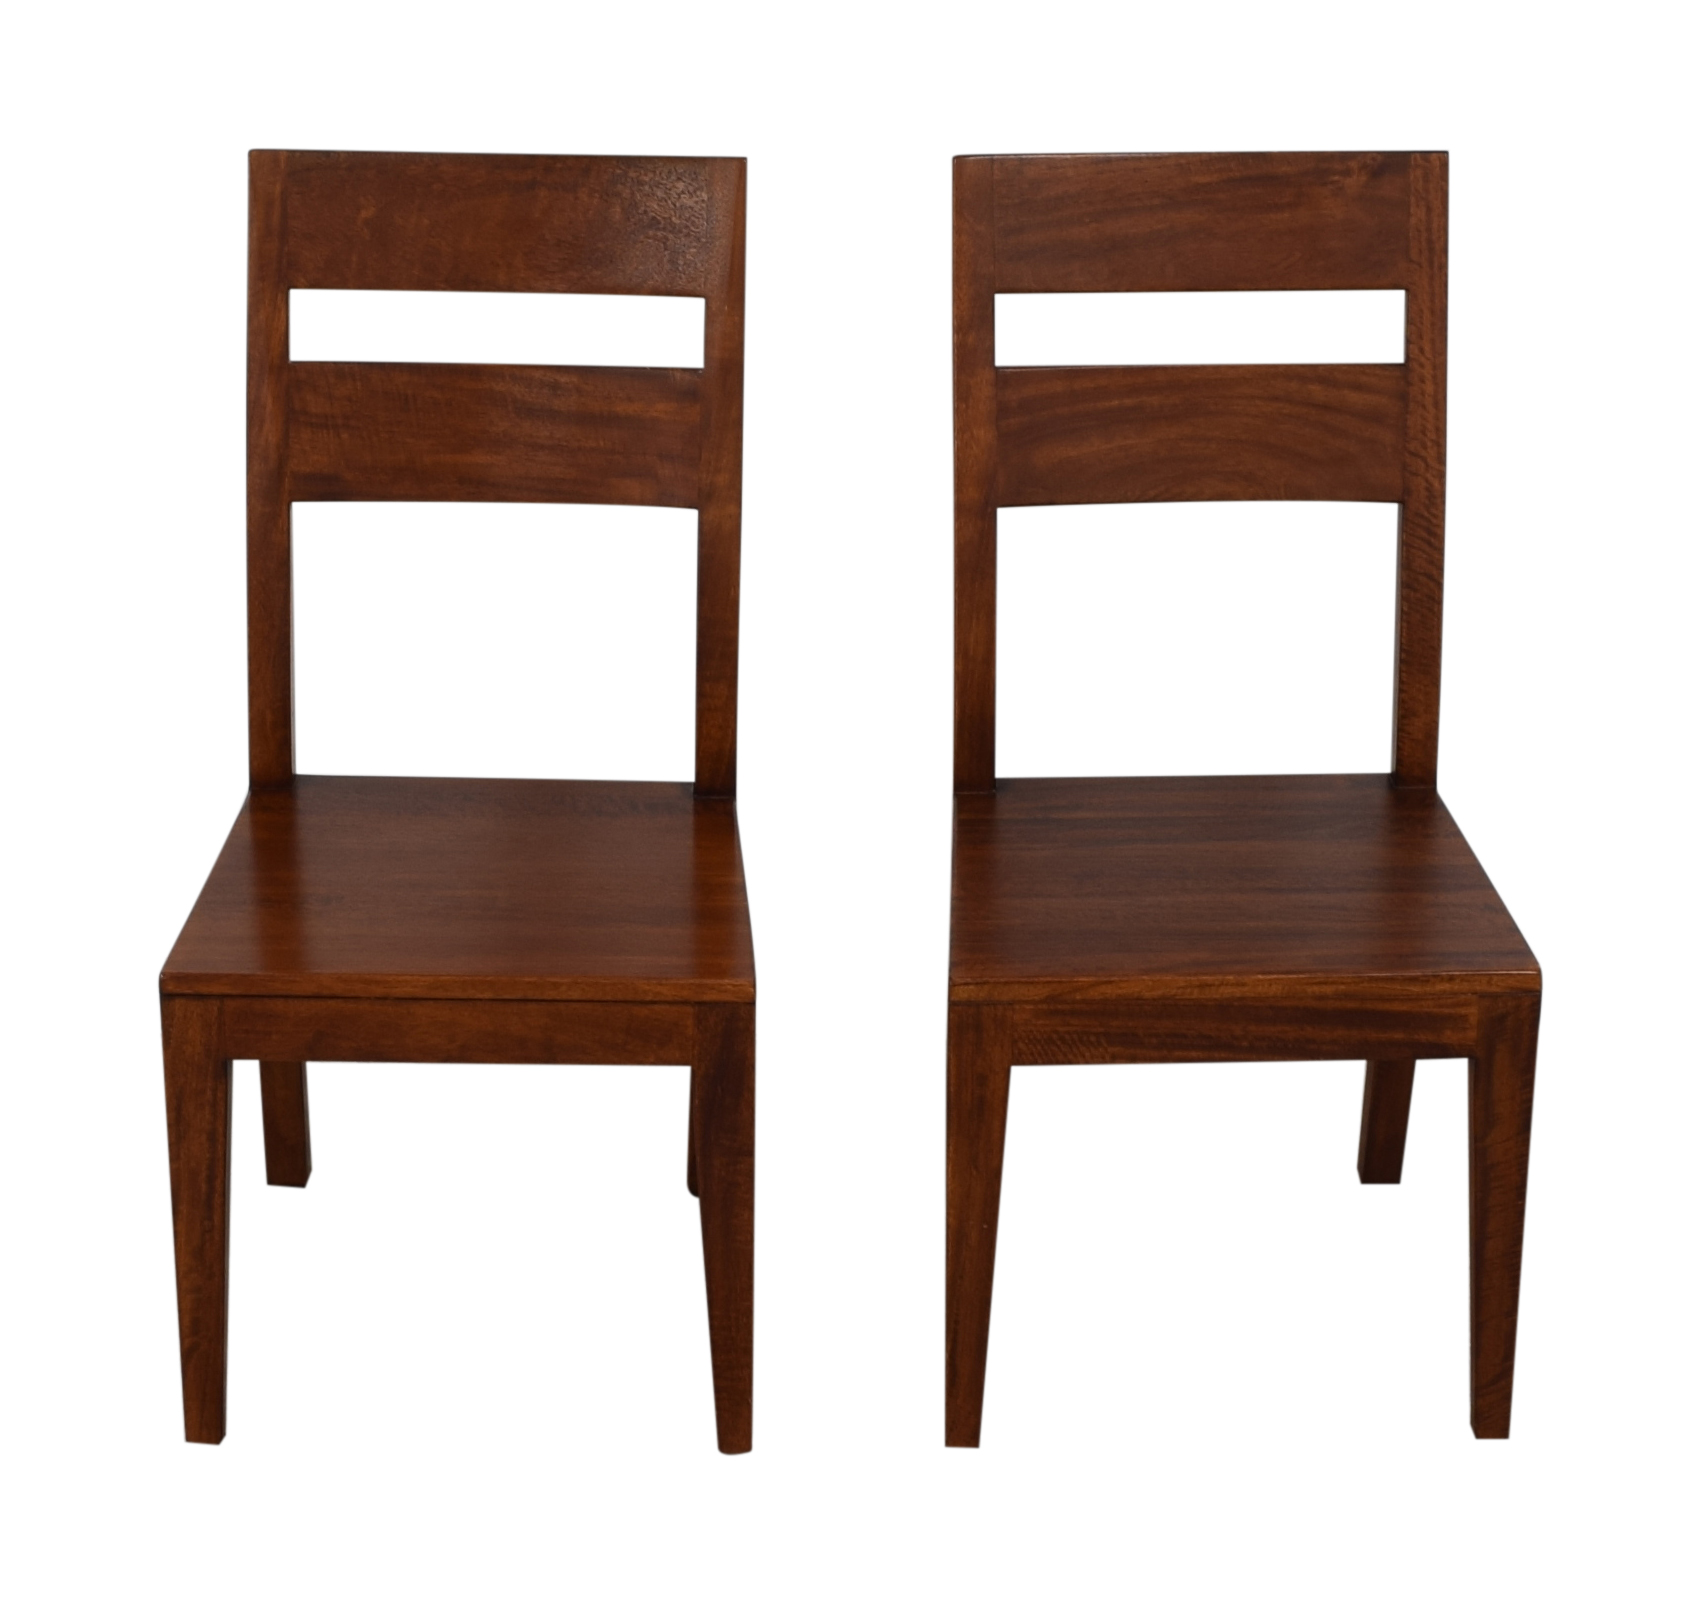 Crate & Barrel Basque Honey Wood Dining Chairs Crate & Barrel